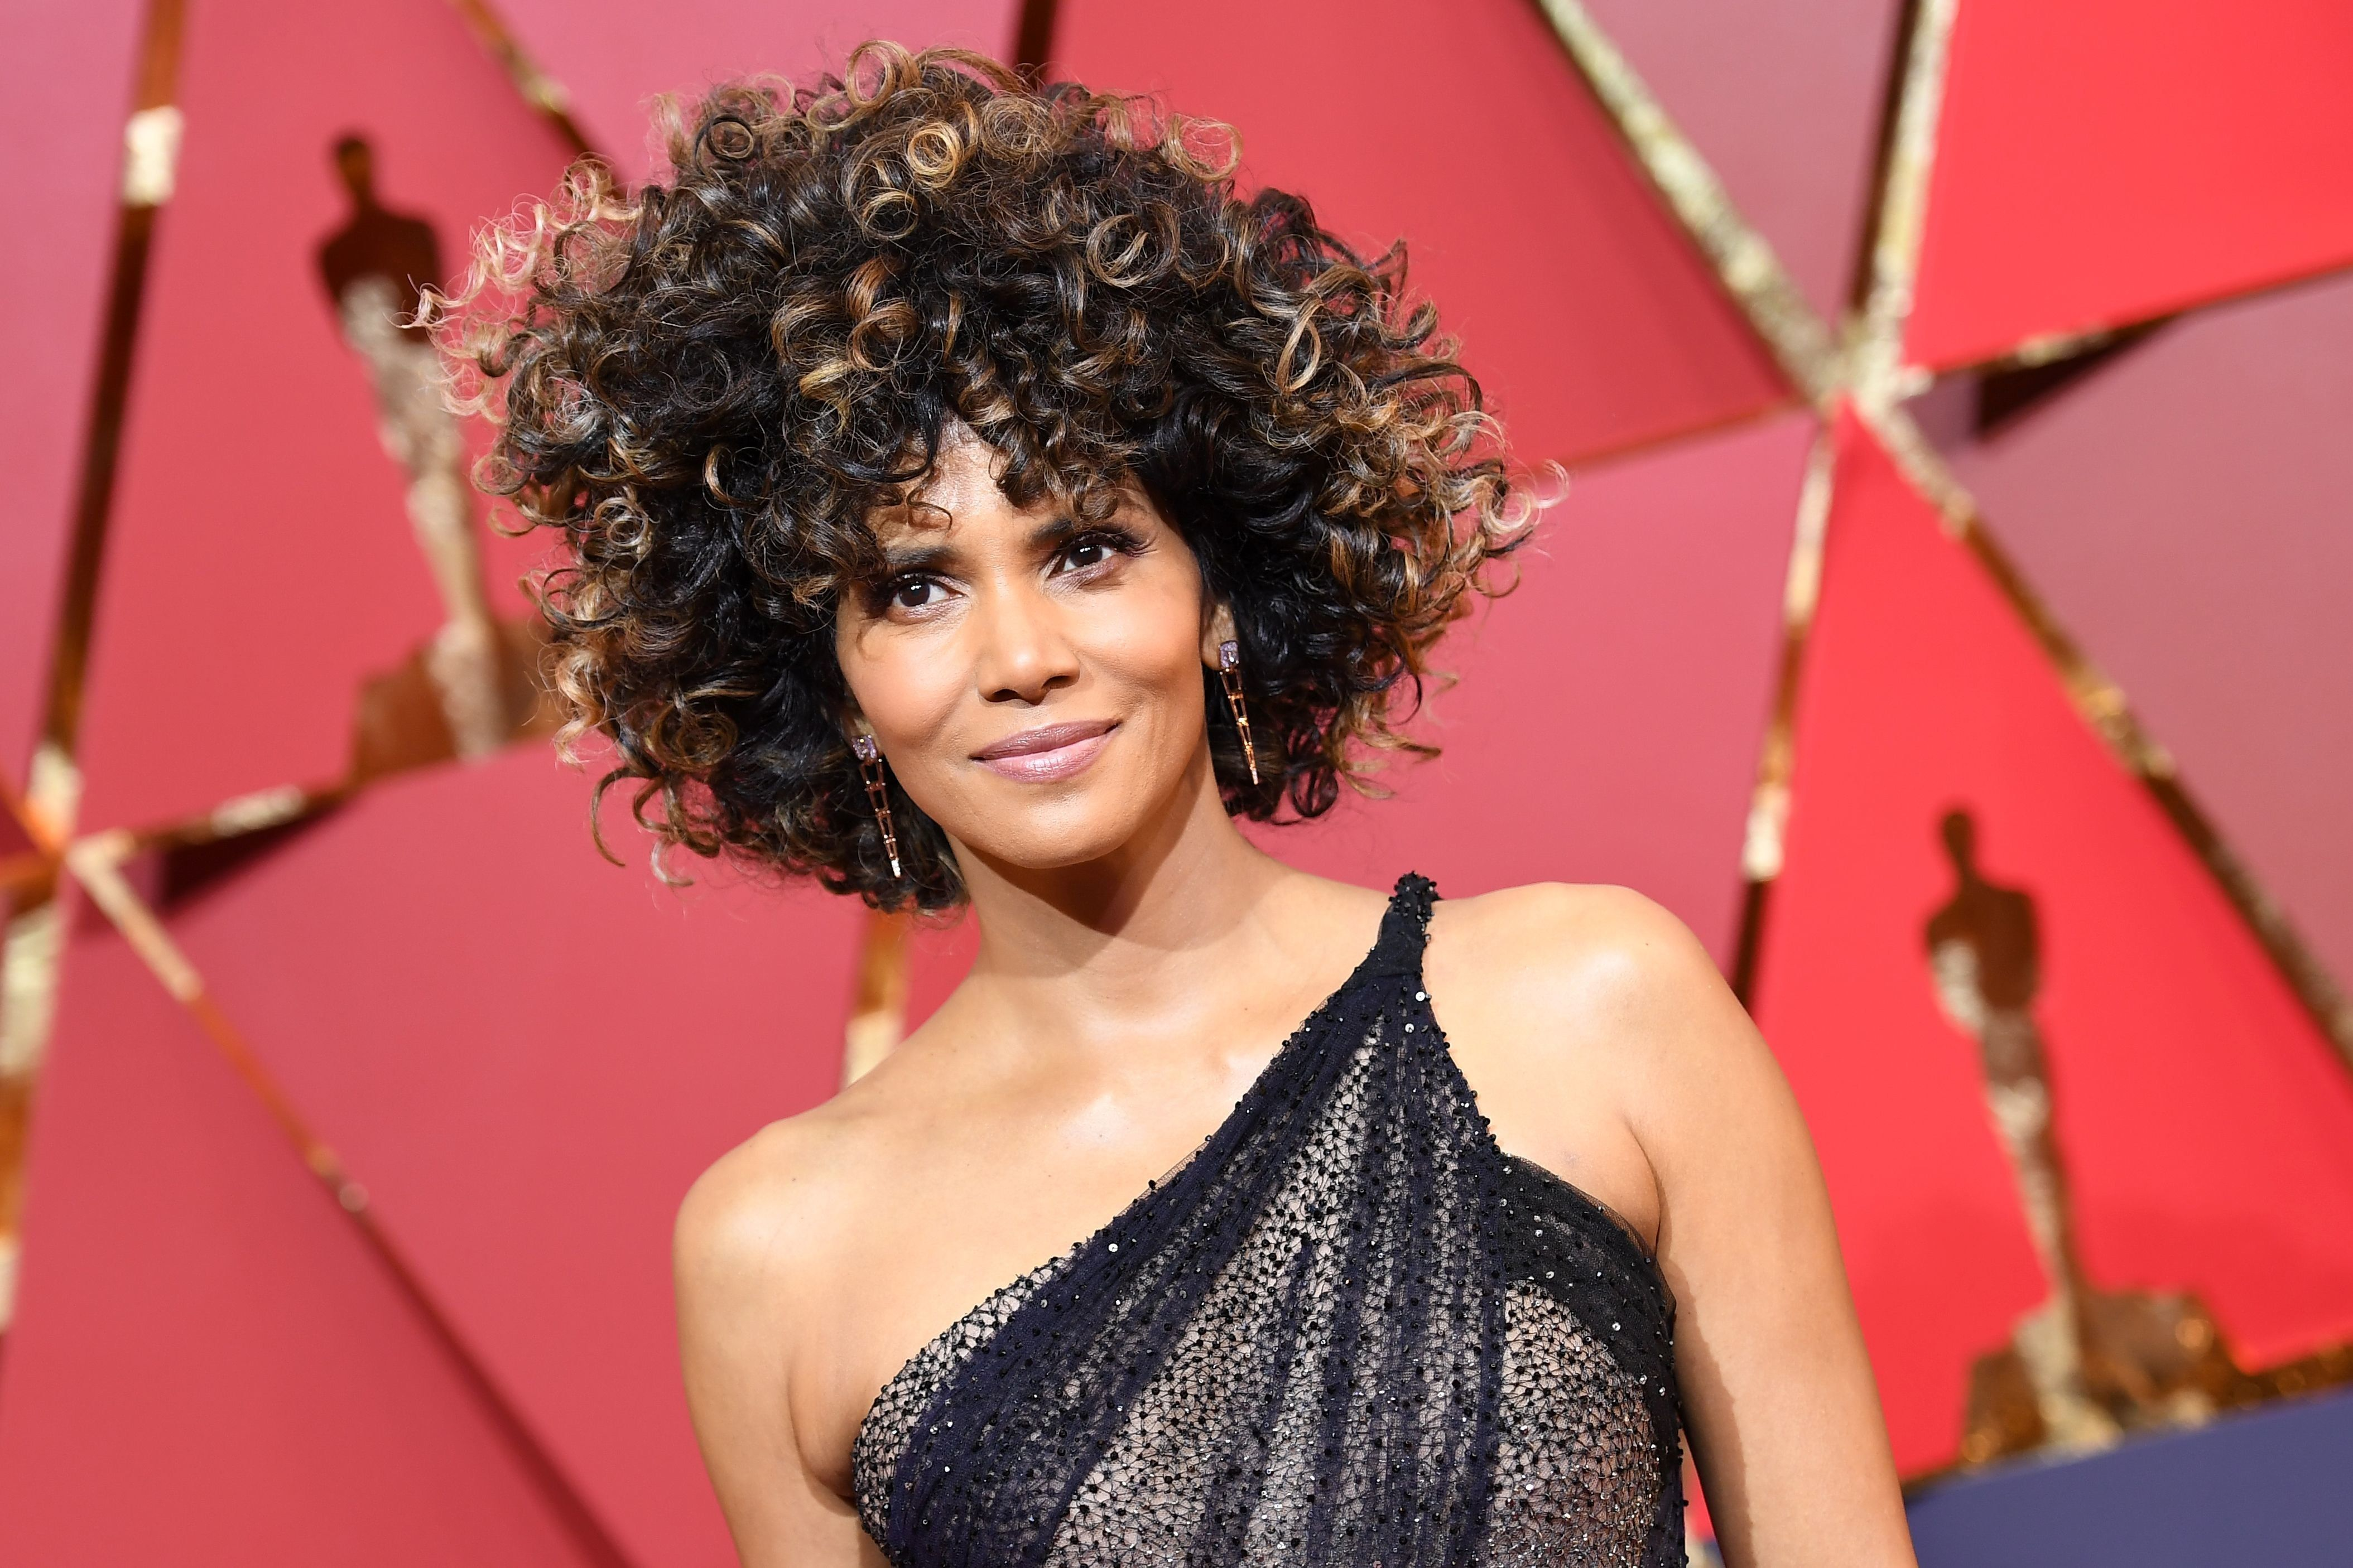 US actress Halle Berry poses as she arrives on the red carpet for the 89th Oscars on February 26, 2017 in Hollywood, California.  / AFP / ANGELA WEISS        (Photo credit should read ANGELA WEISS/AFP/Getty Images)